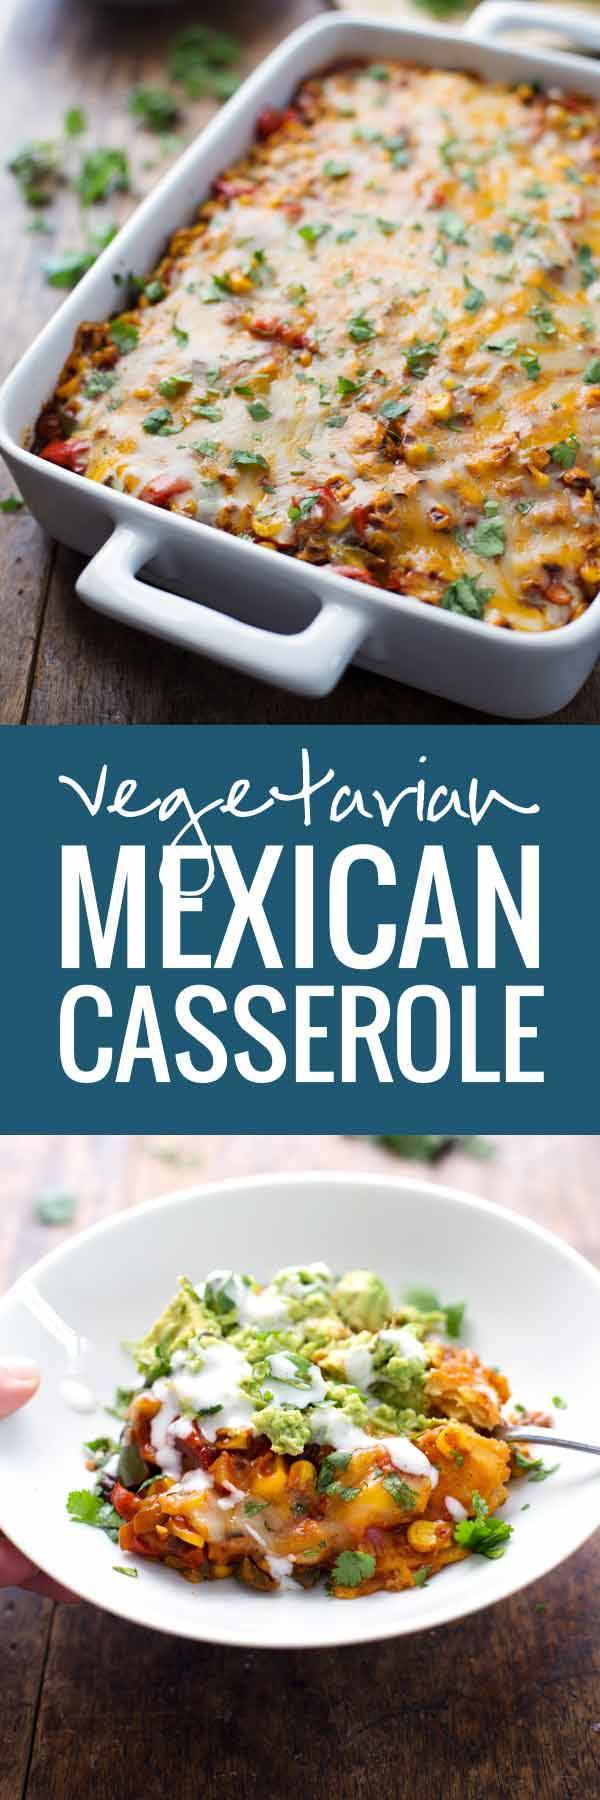 Healthy Mexican Casserole with Roasted Corn and Peppers Recipe ...